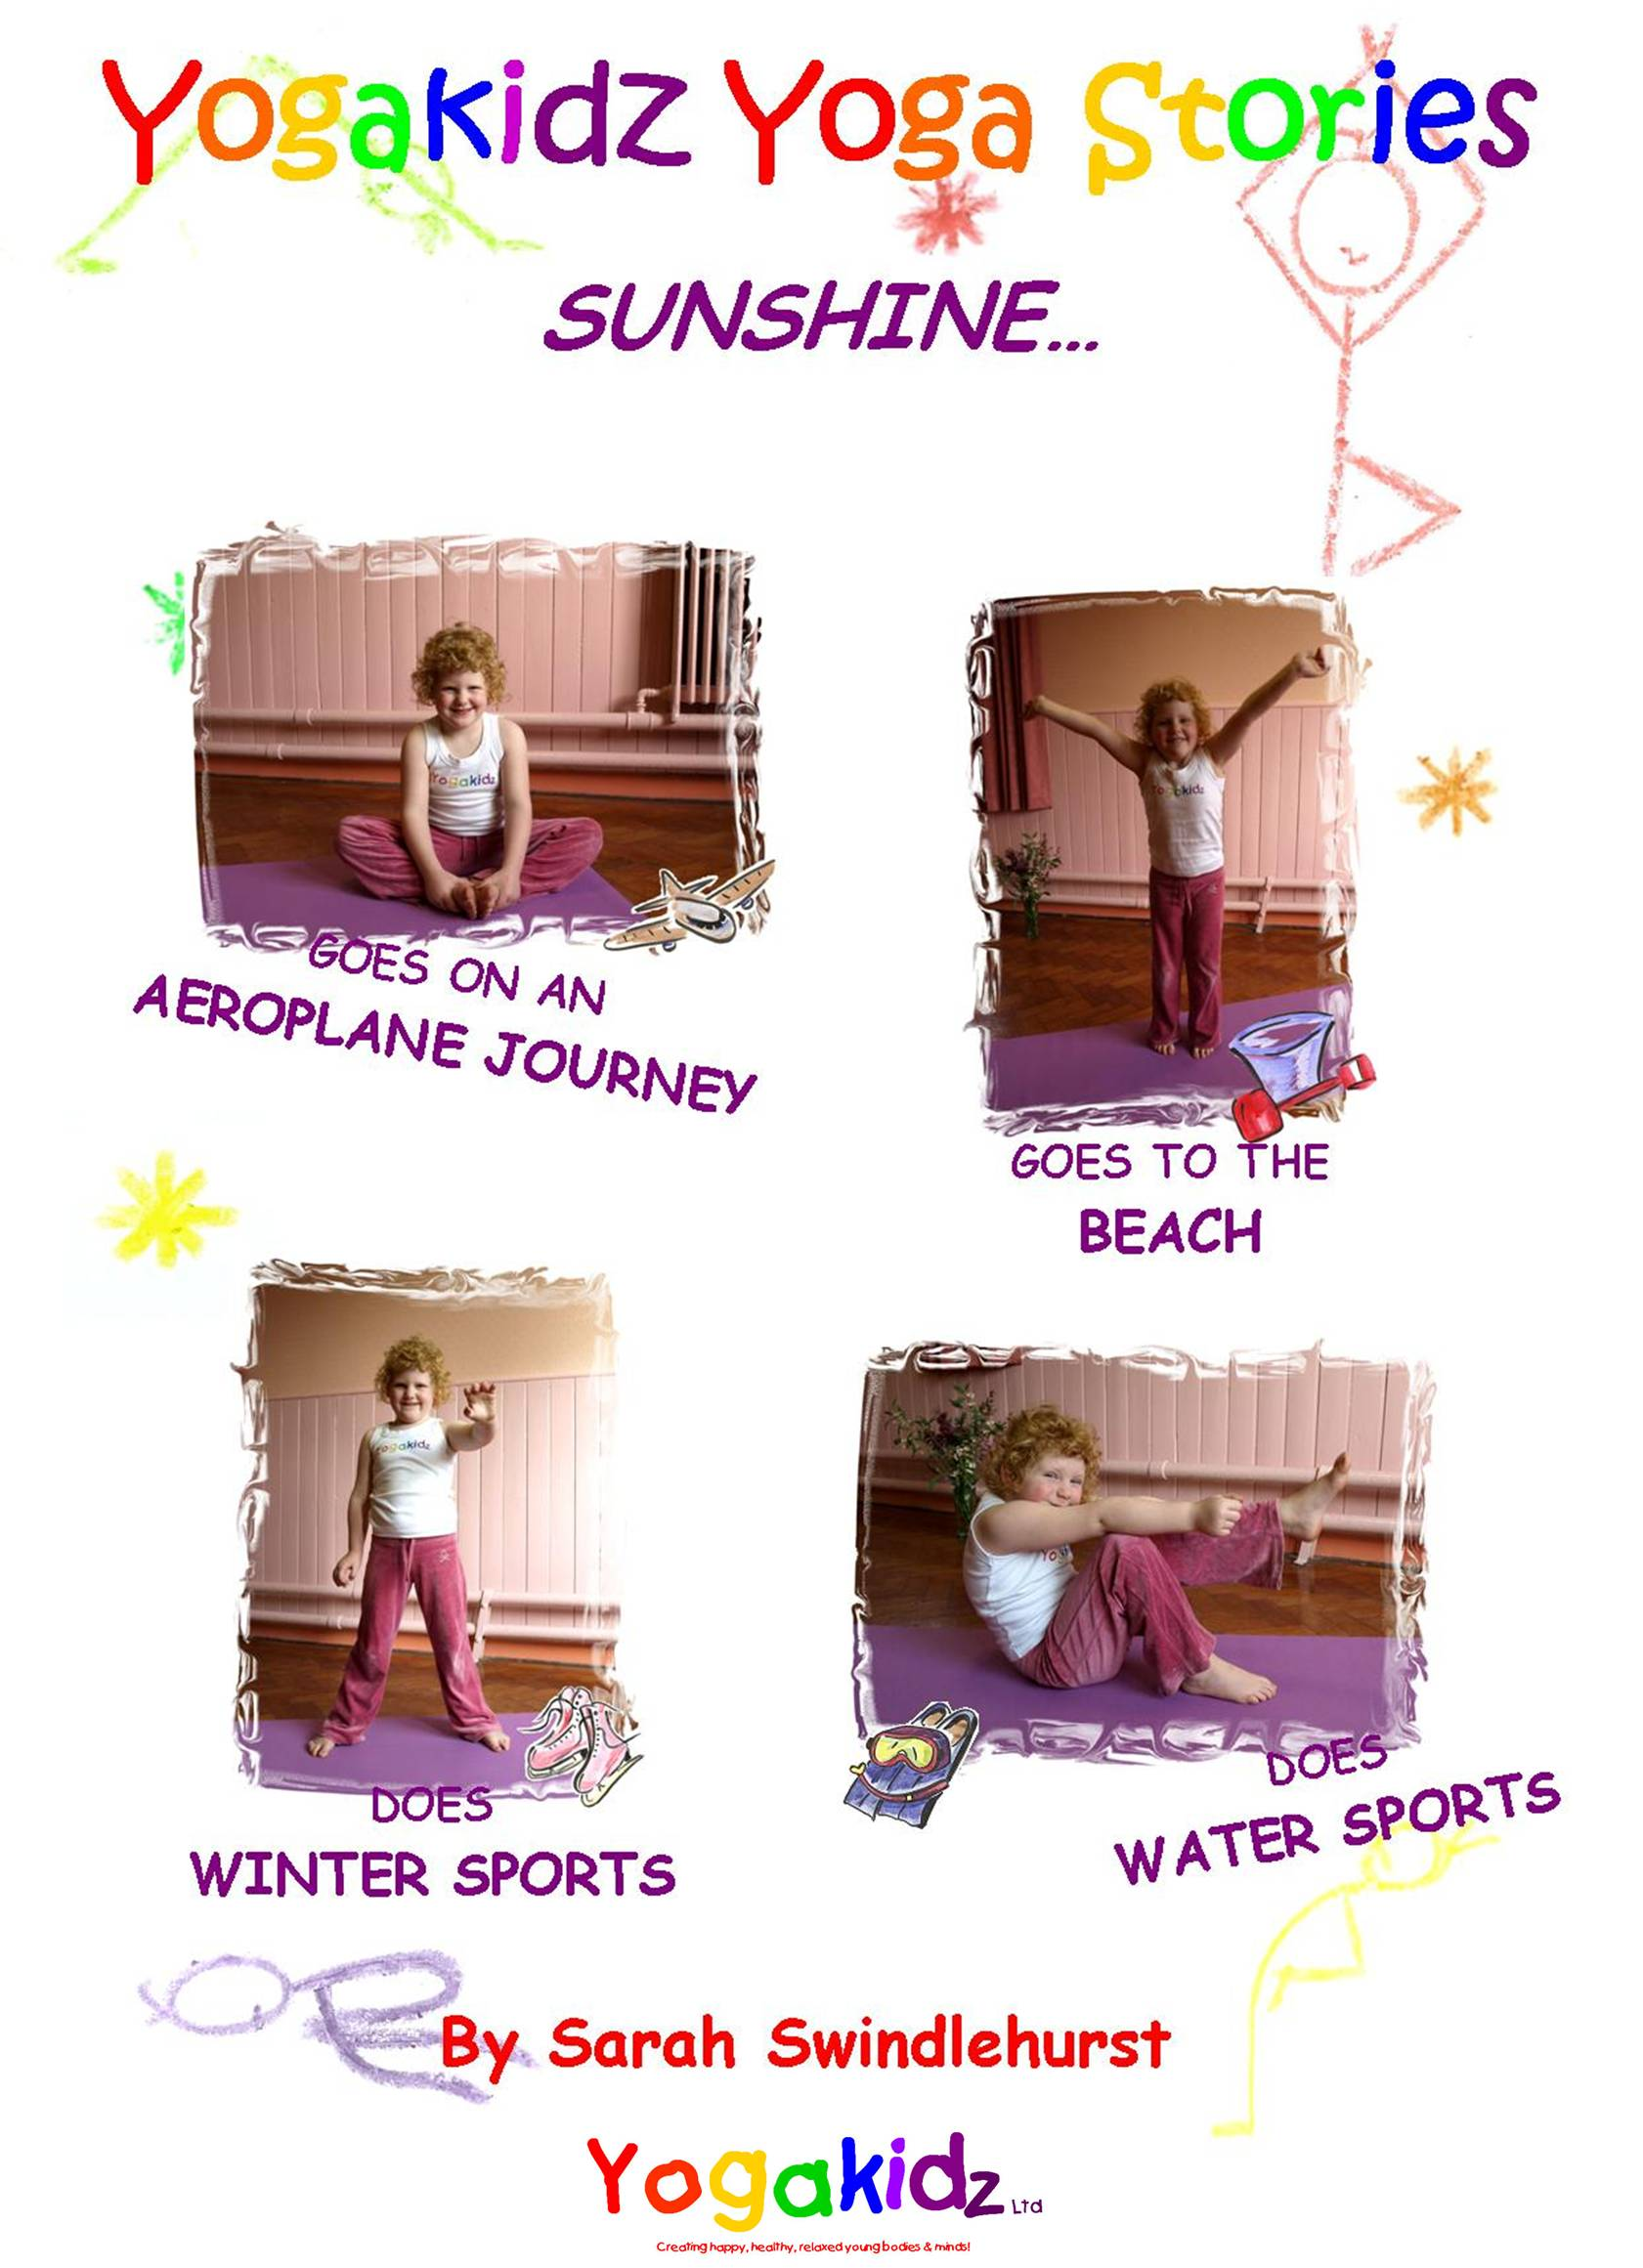 Yogakidz Yoga Stories - Sunshine PDF Version